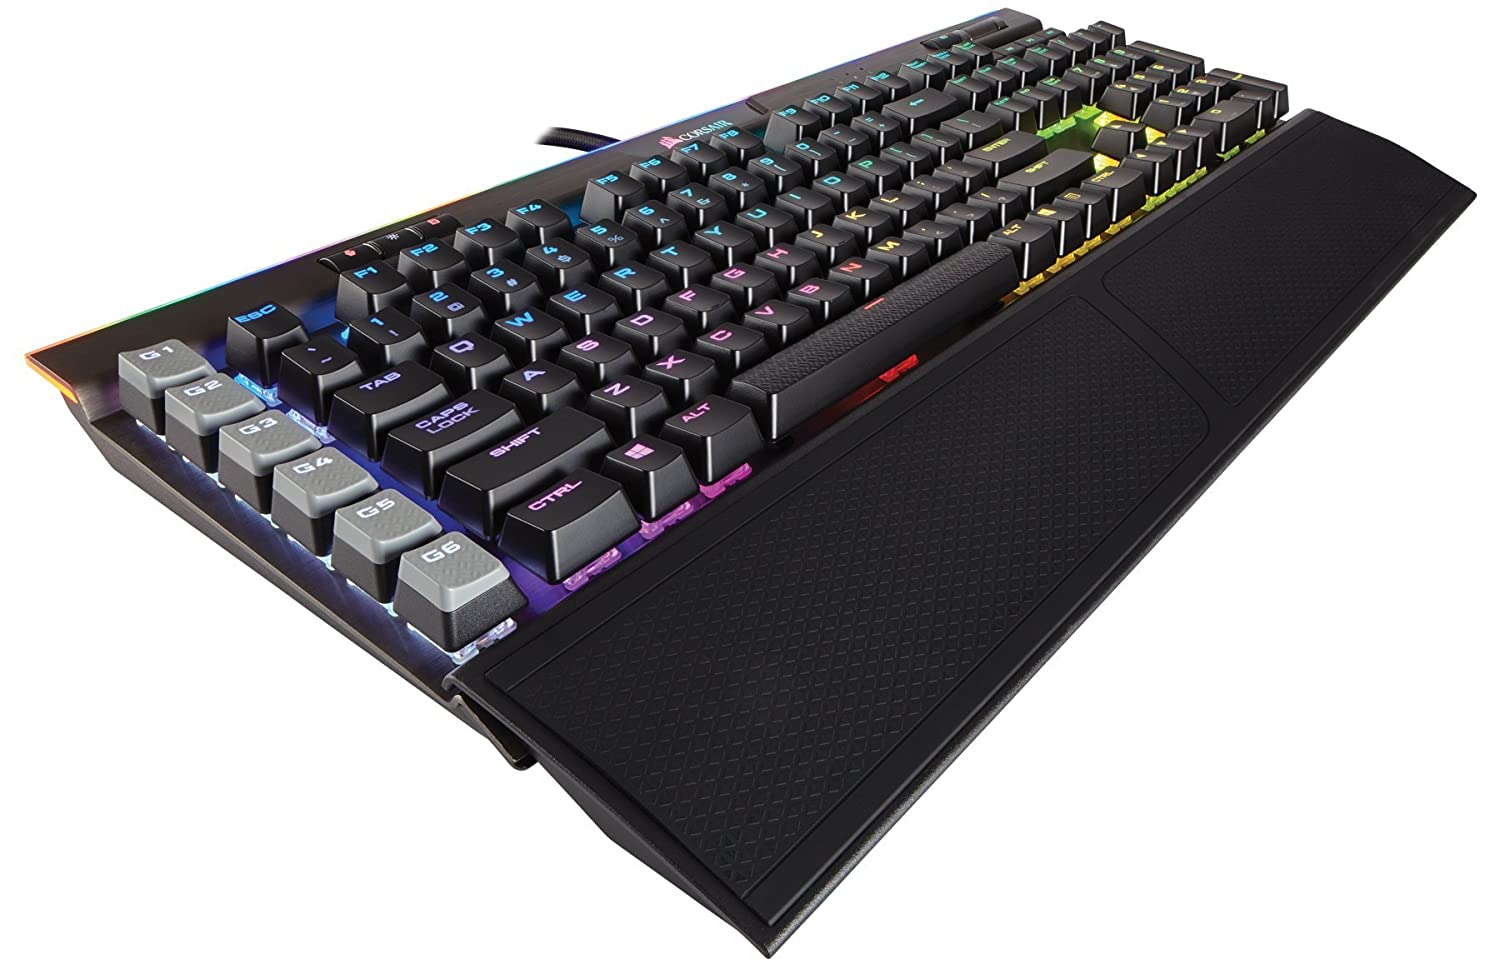 Corsair K95 RGB Platinum Mechanical Keyboard Black Friday Deals 2019